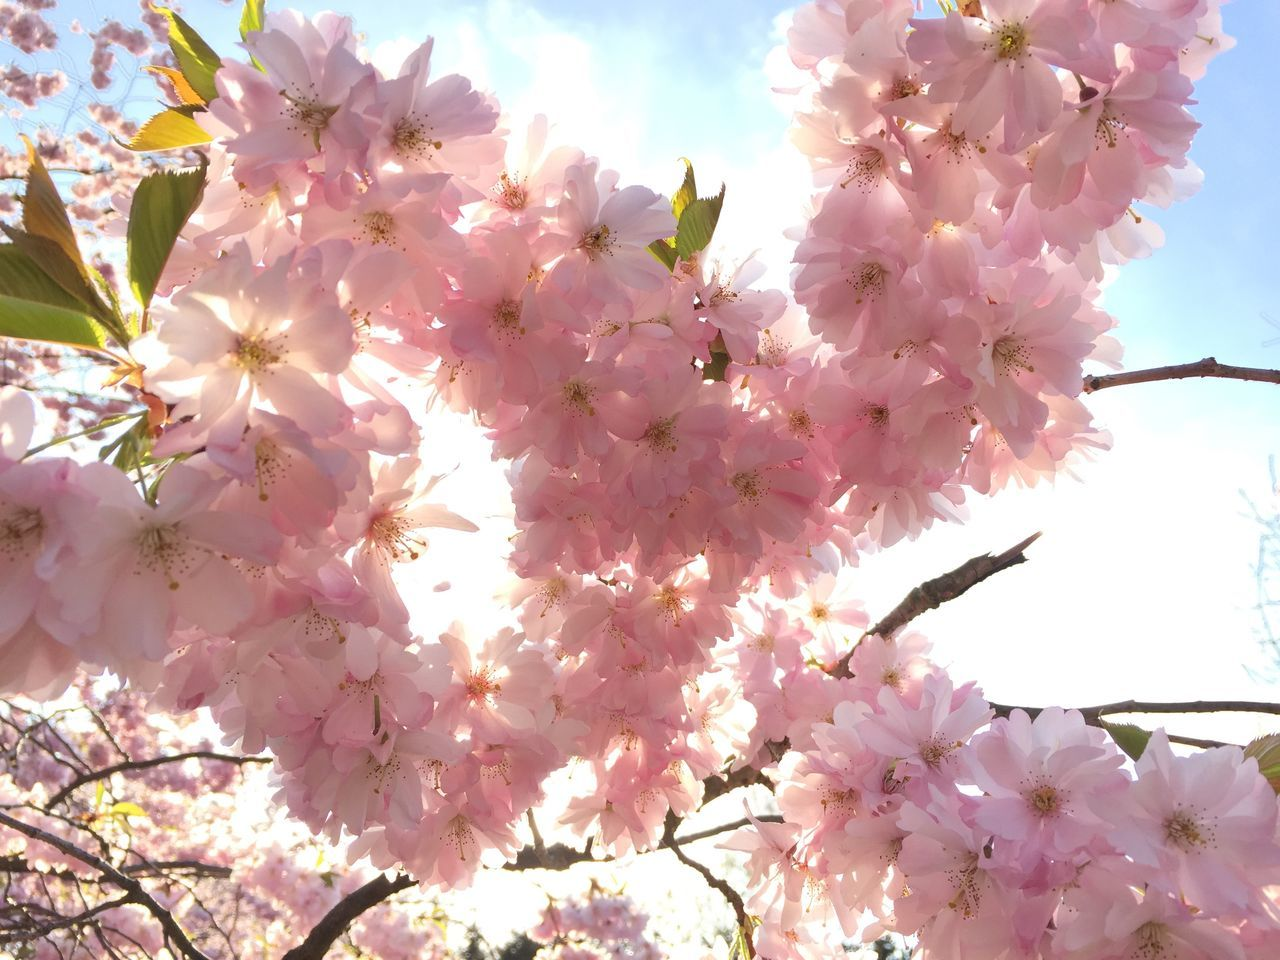 flower, blossom, fragility, beauty in nature, growth, nature, pink color, springtime, branch, freshness, tree, low angle view, botany, no people, twig, petal, outdoors, day, flower head, blooming, close-up, sky